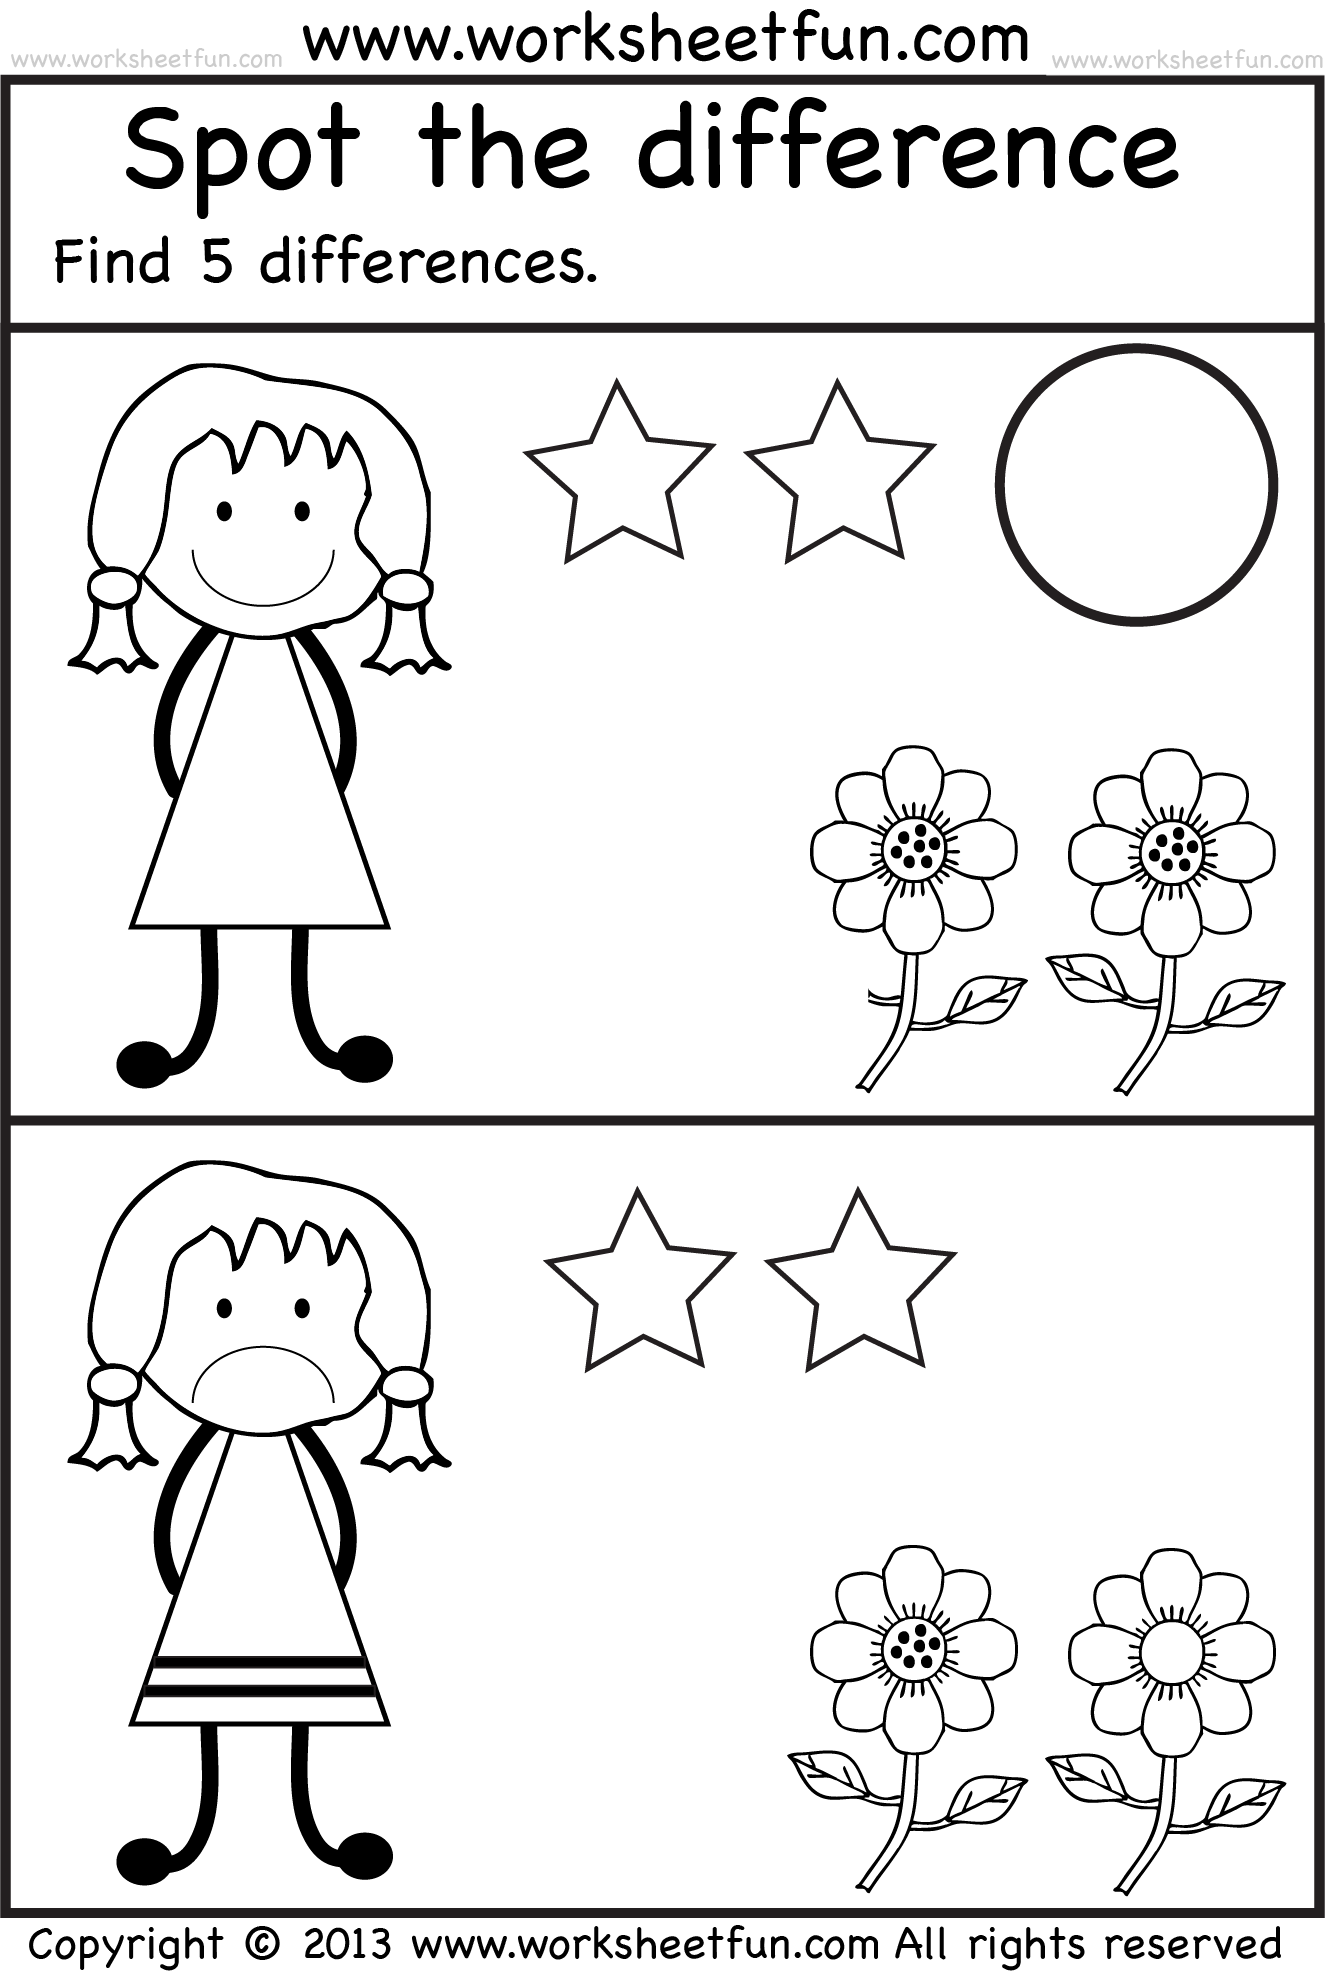 spot the differences | Ideas | Pinterest | Worksheets, Printable ...